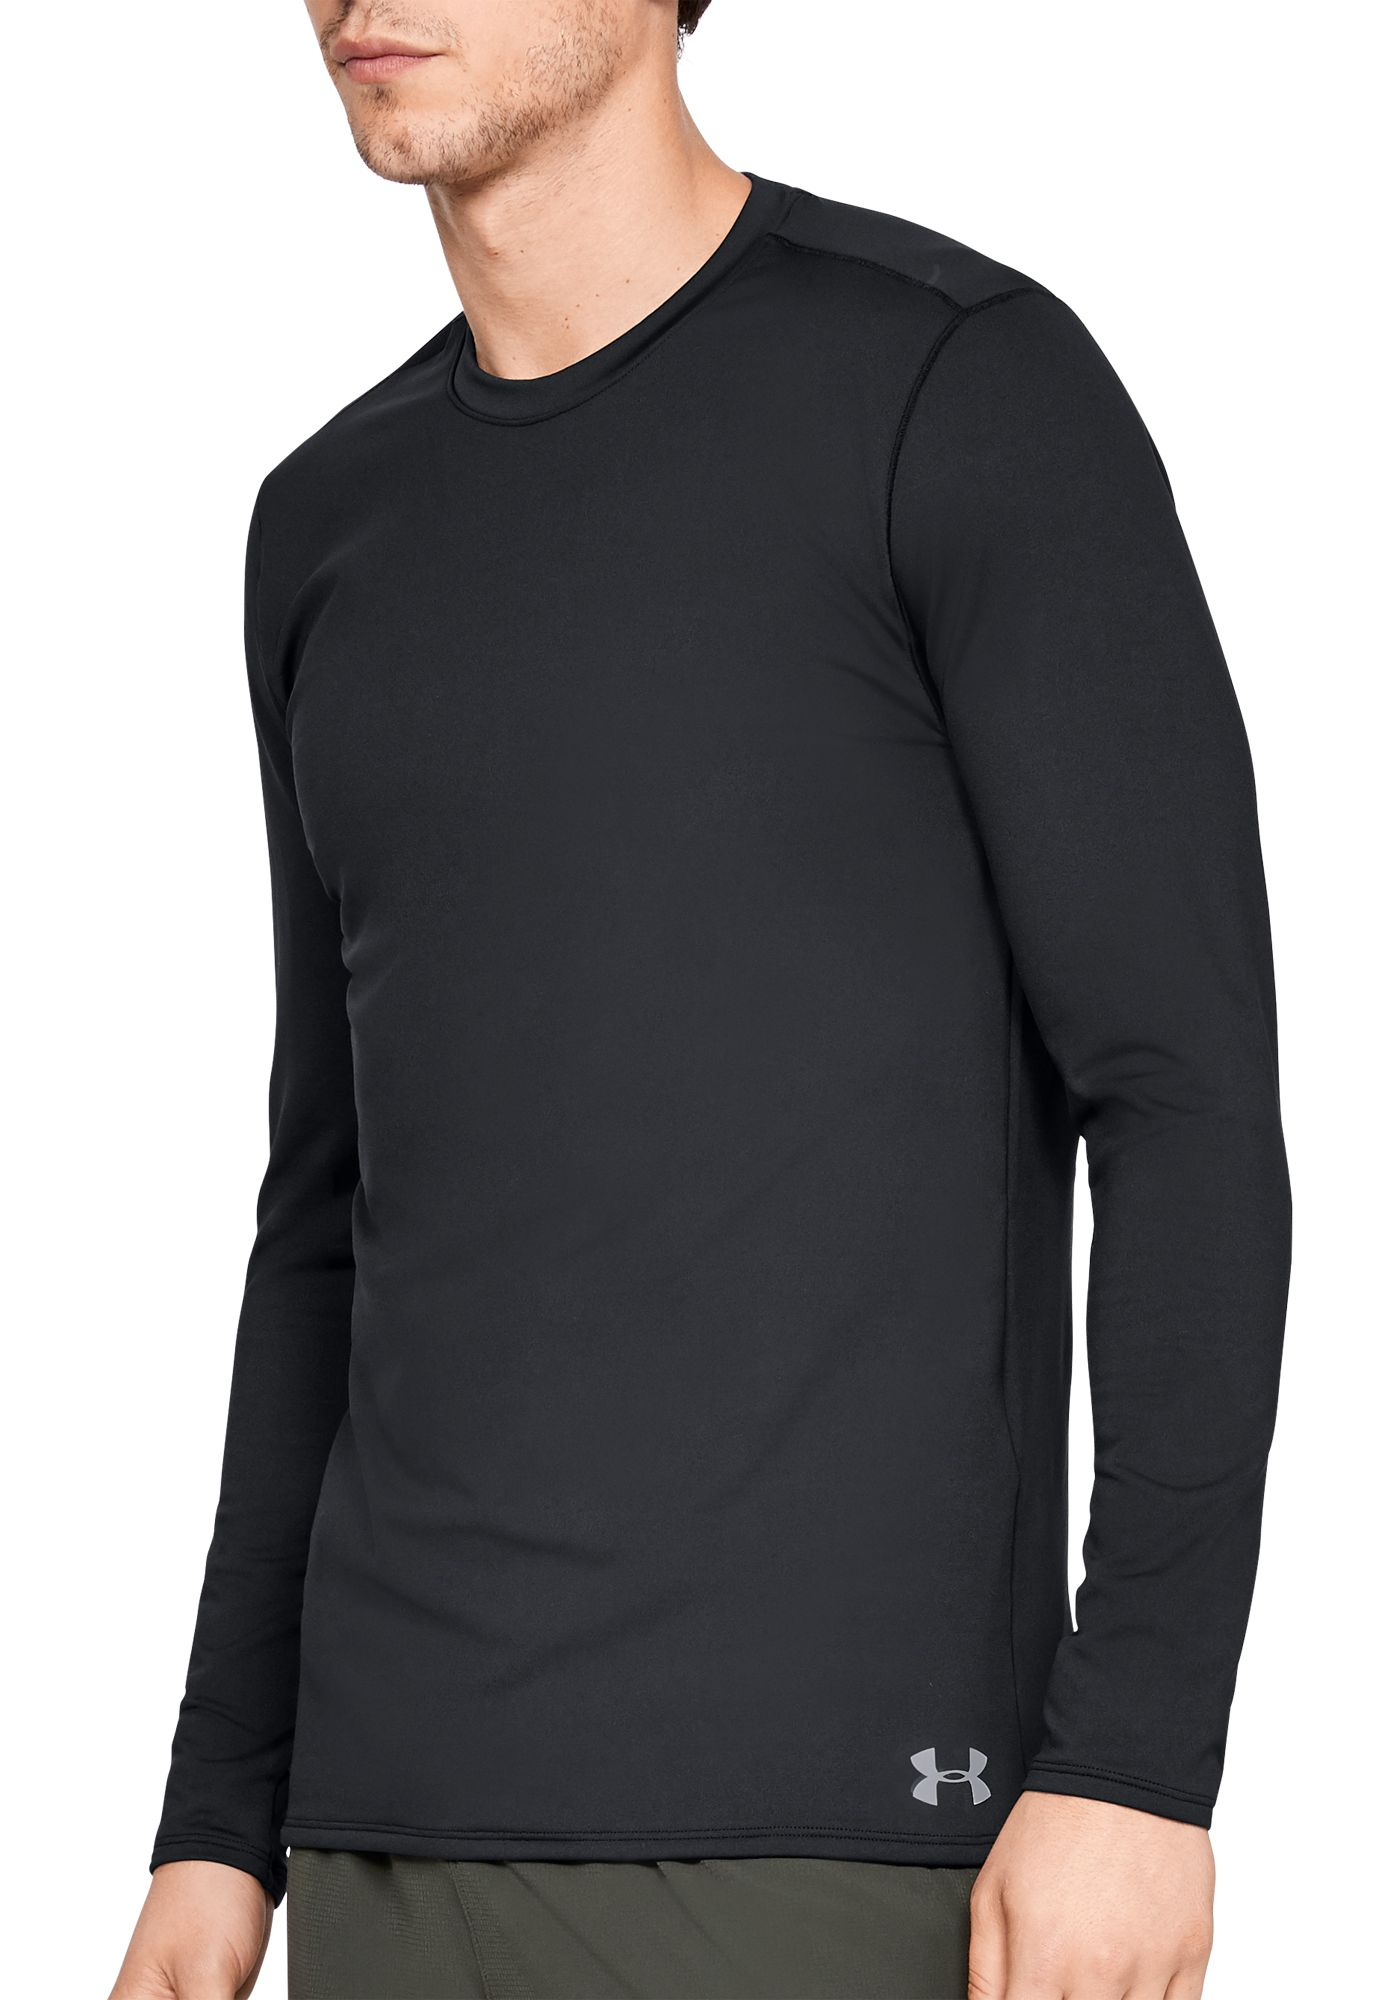 Under Armour Men's ColdGear Fitted Crew Long Sleeve Shirt